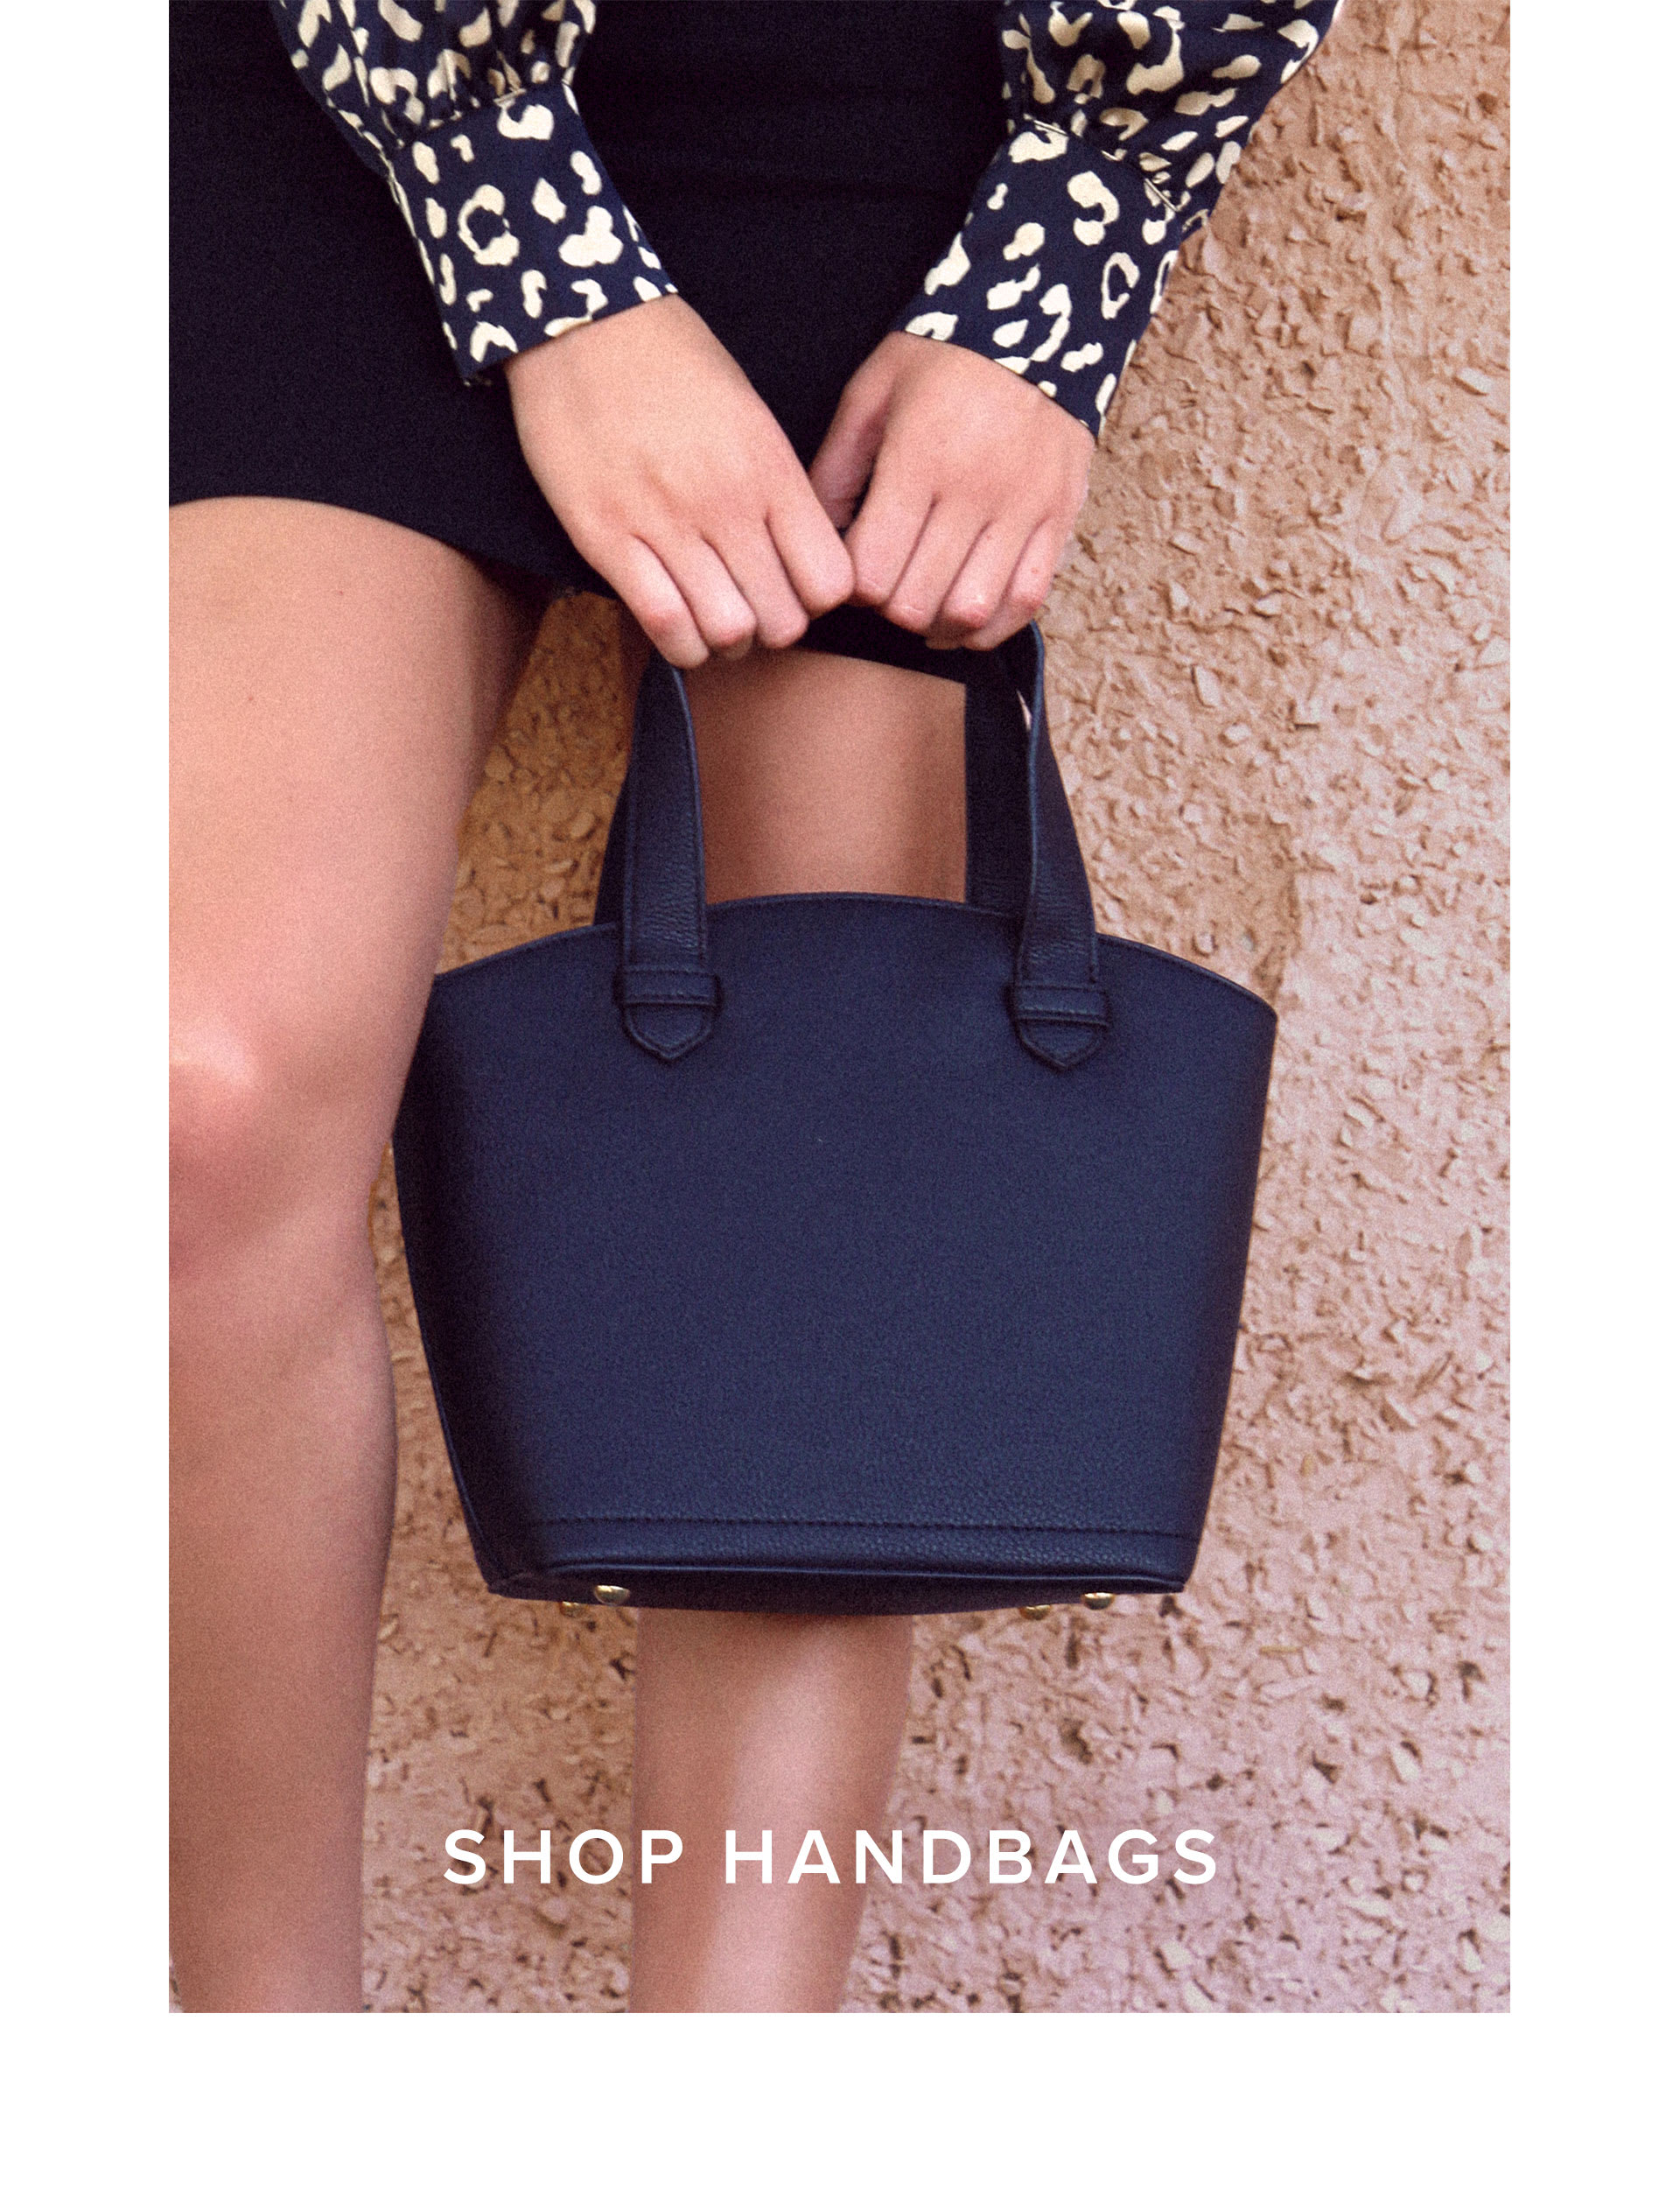 Cute Dresses, Tops, Shoes, Jewelry & Clothing for Women | Lulus